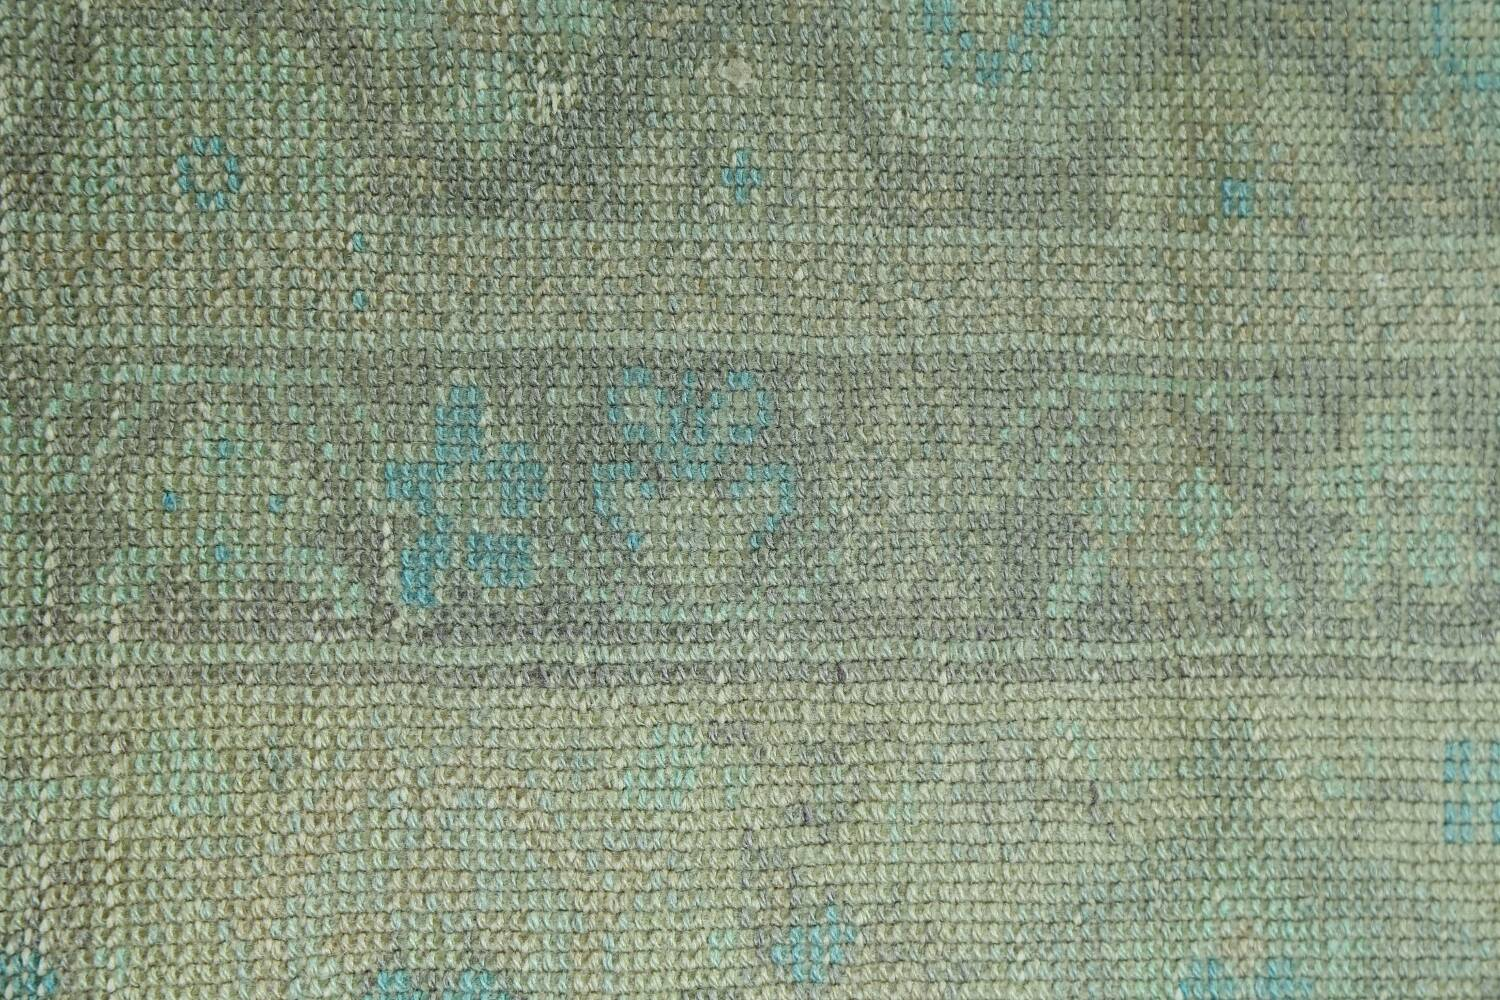 Antique 100% Vegetable Dye Sultanabad Persian Area Rug 8x9 image 9